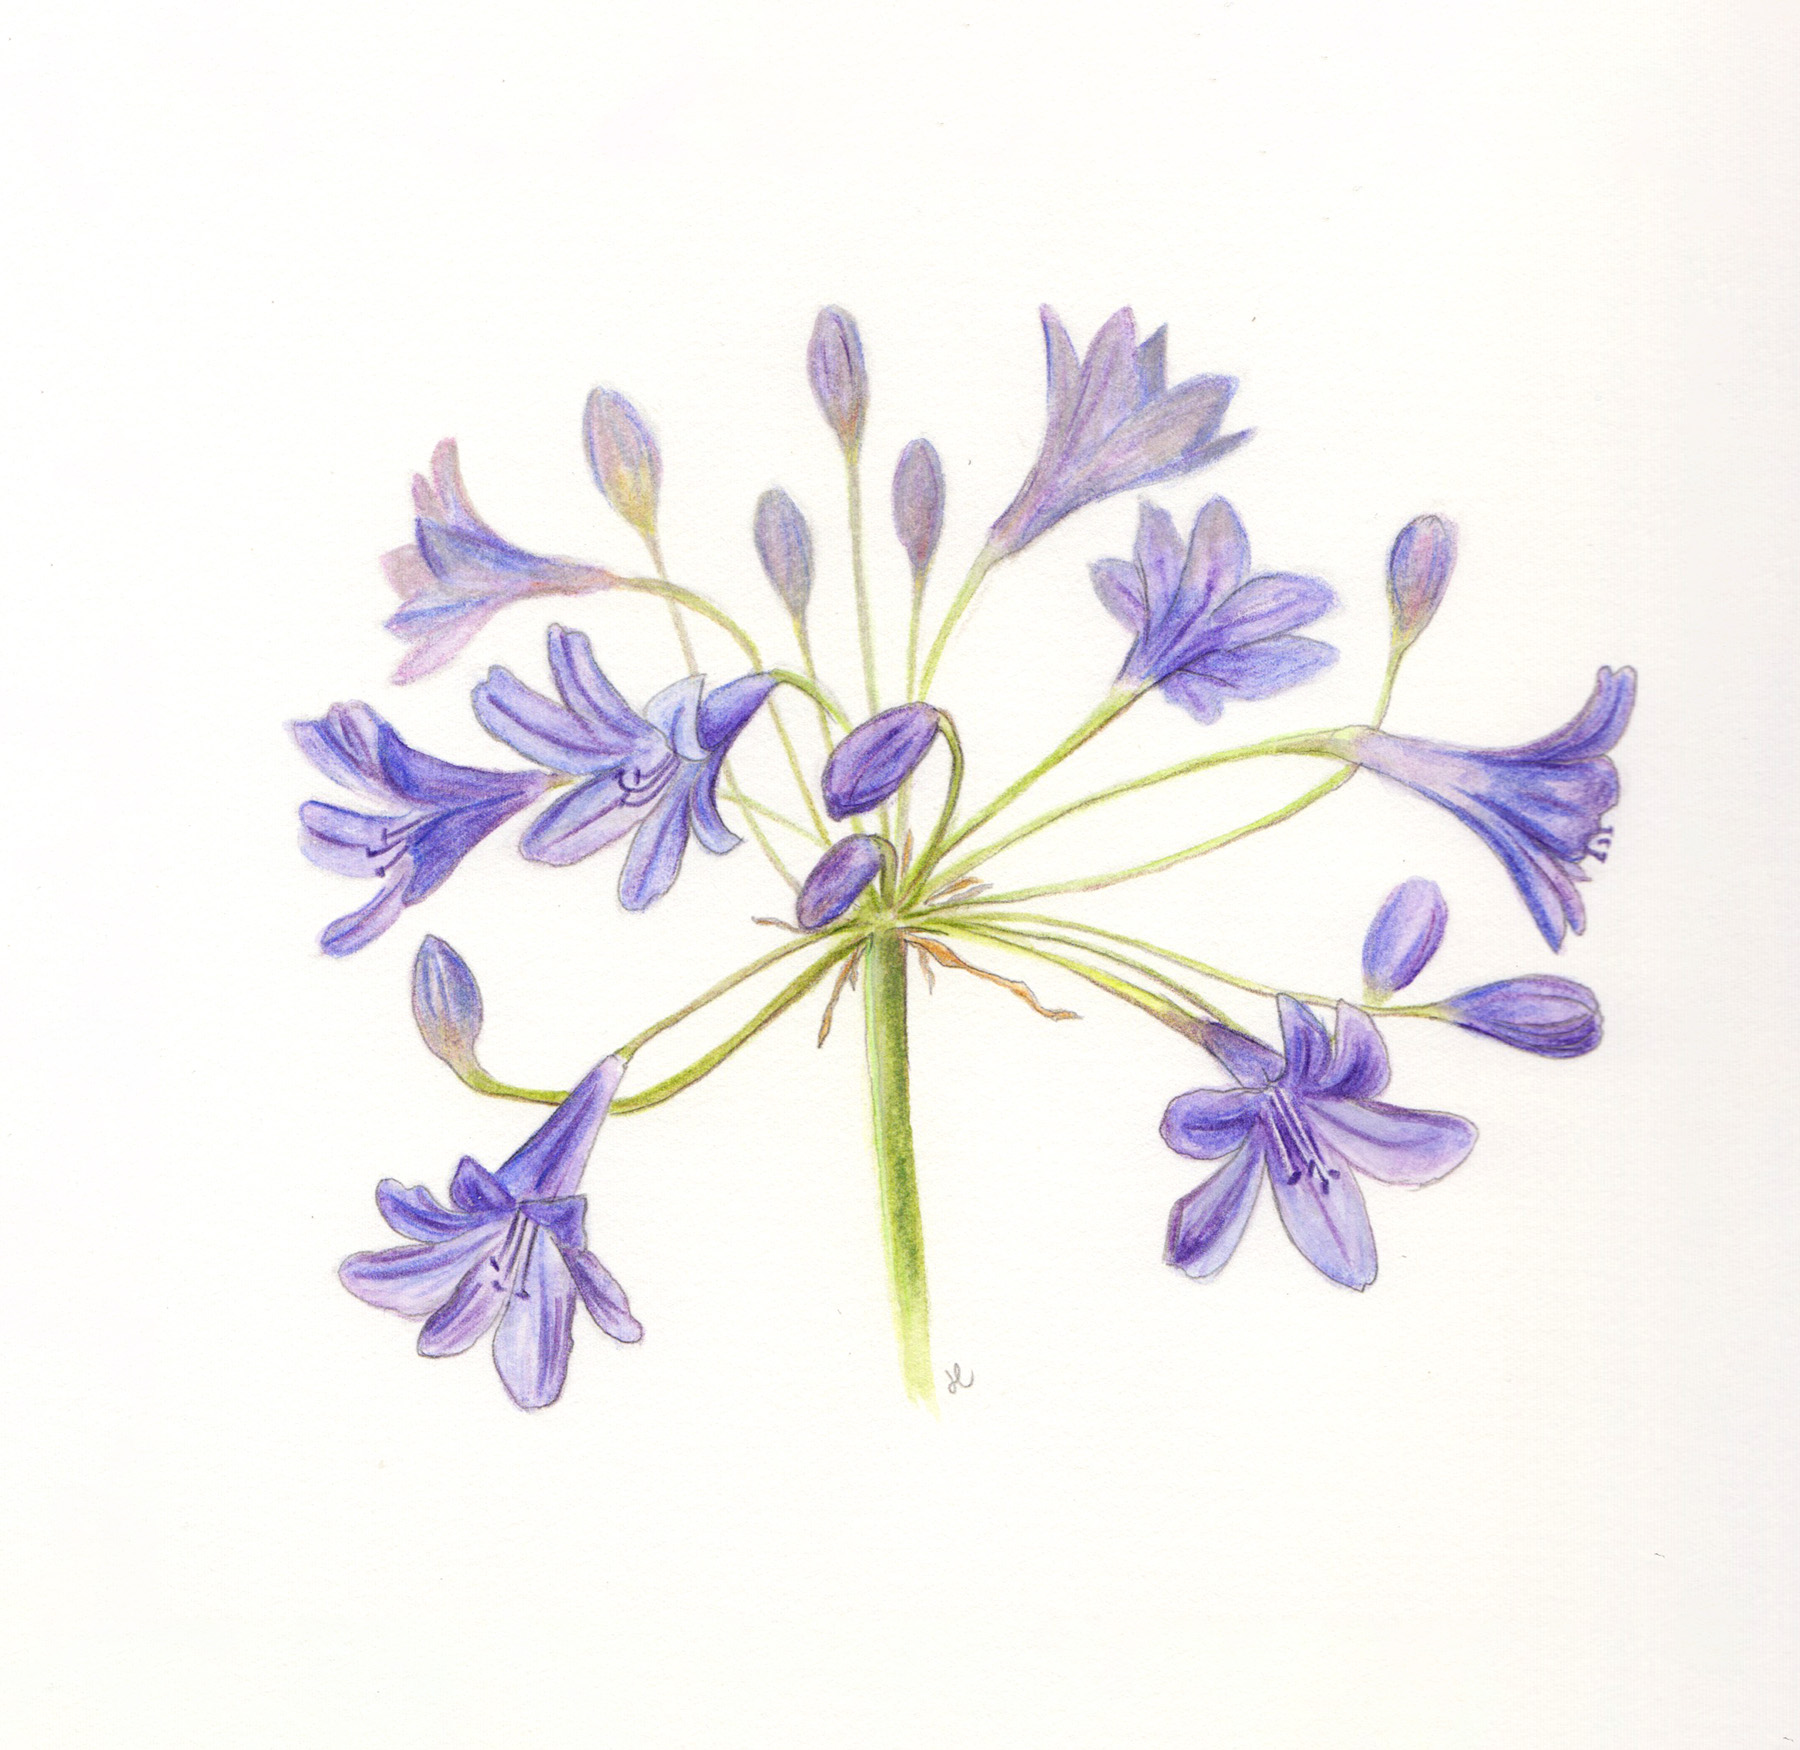 African lily (Agapanthus), watercolor